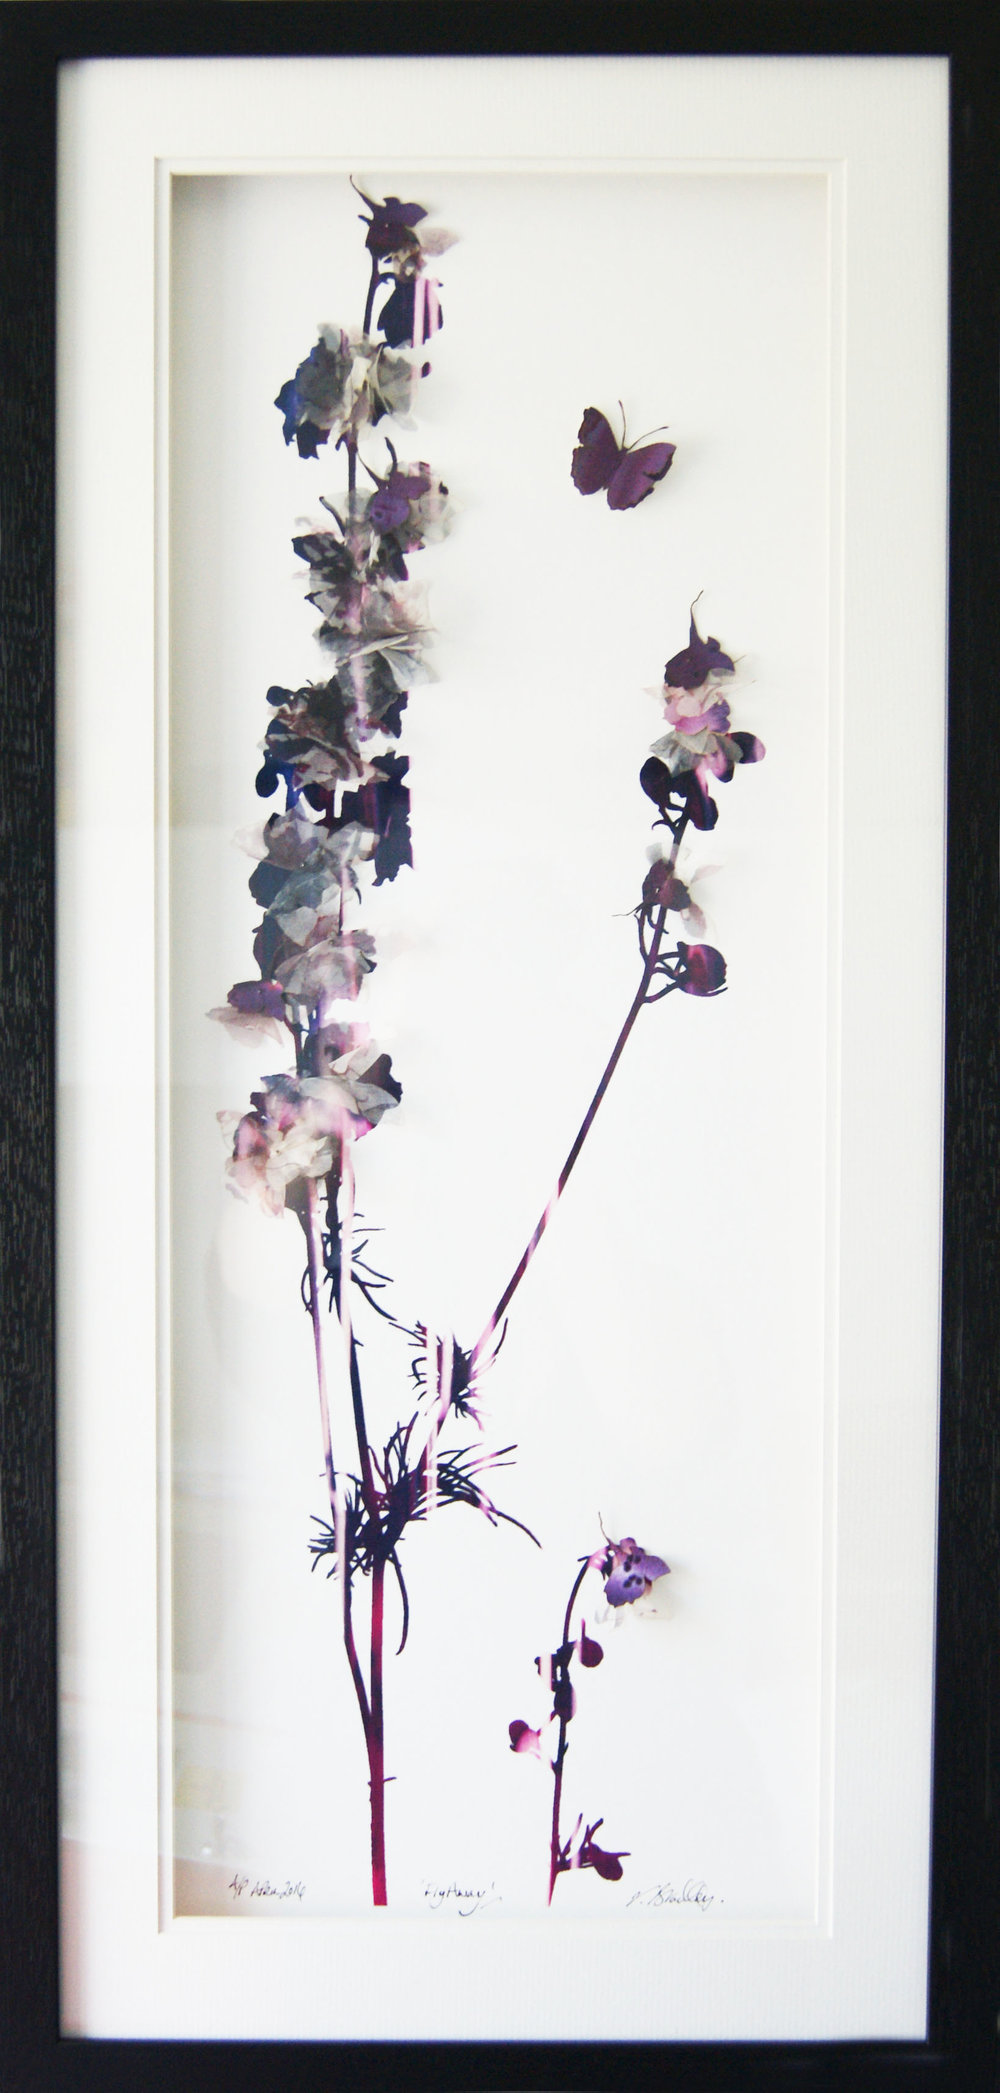 'Fly Away' (33x73cm)£320.00. Visit the  shop  on our website to purchase.